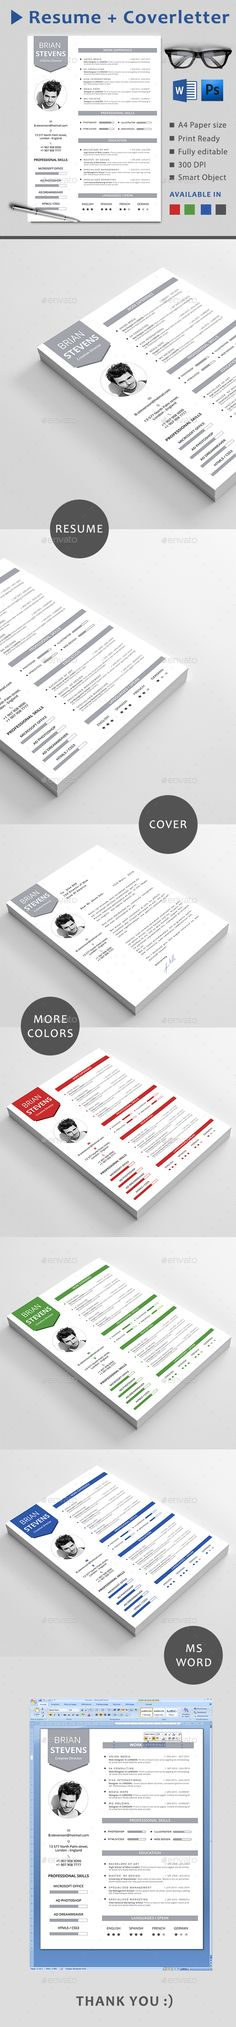 #Resume - Resumes #Stationery Download here: https://graphicriver.net/item/resume/14247812?ref=alena994